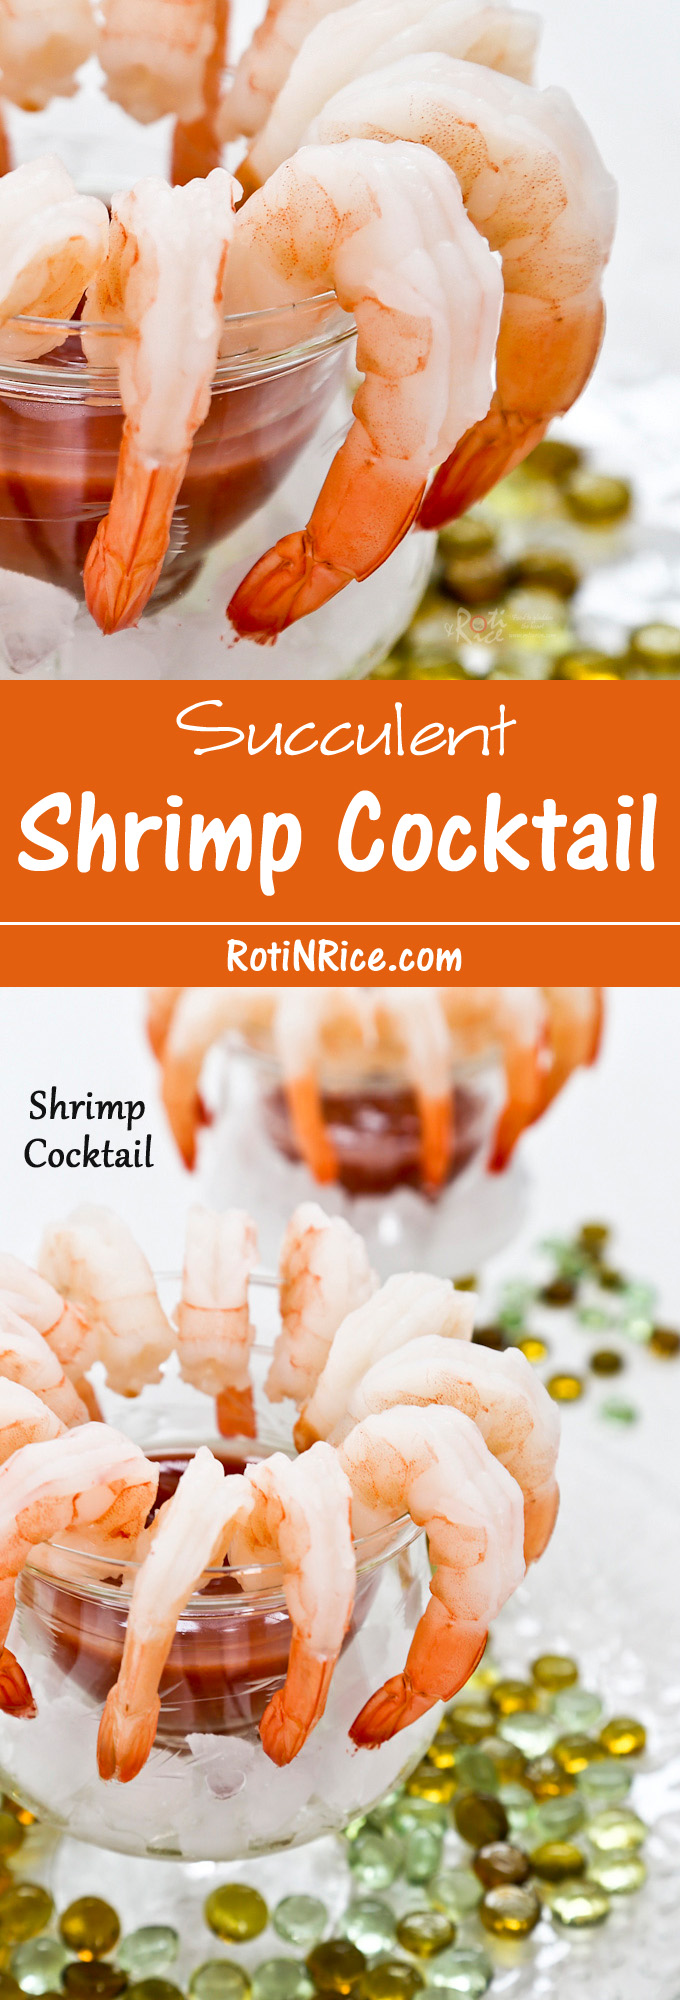 A delightful succulent Shrimp Cocktail with a slightly spicy and tangy tomato and horseradish sauce to start off your meal or holiday party. | Food to gladden the heart at RotiNRice.com